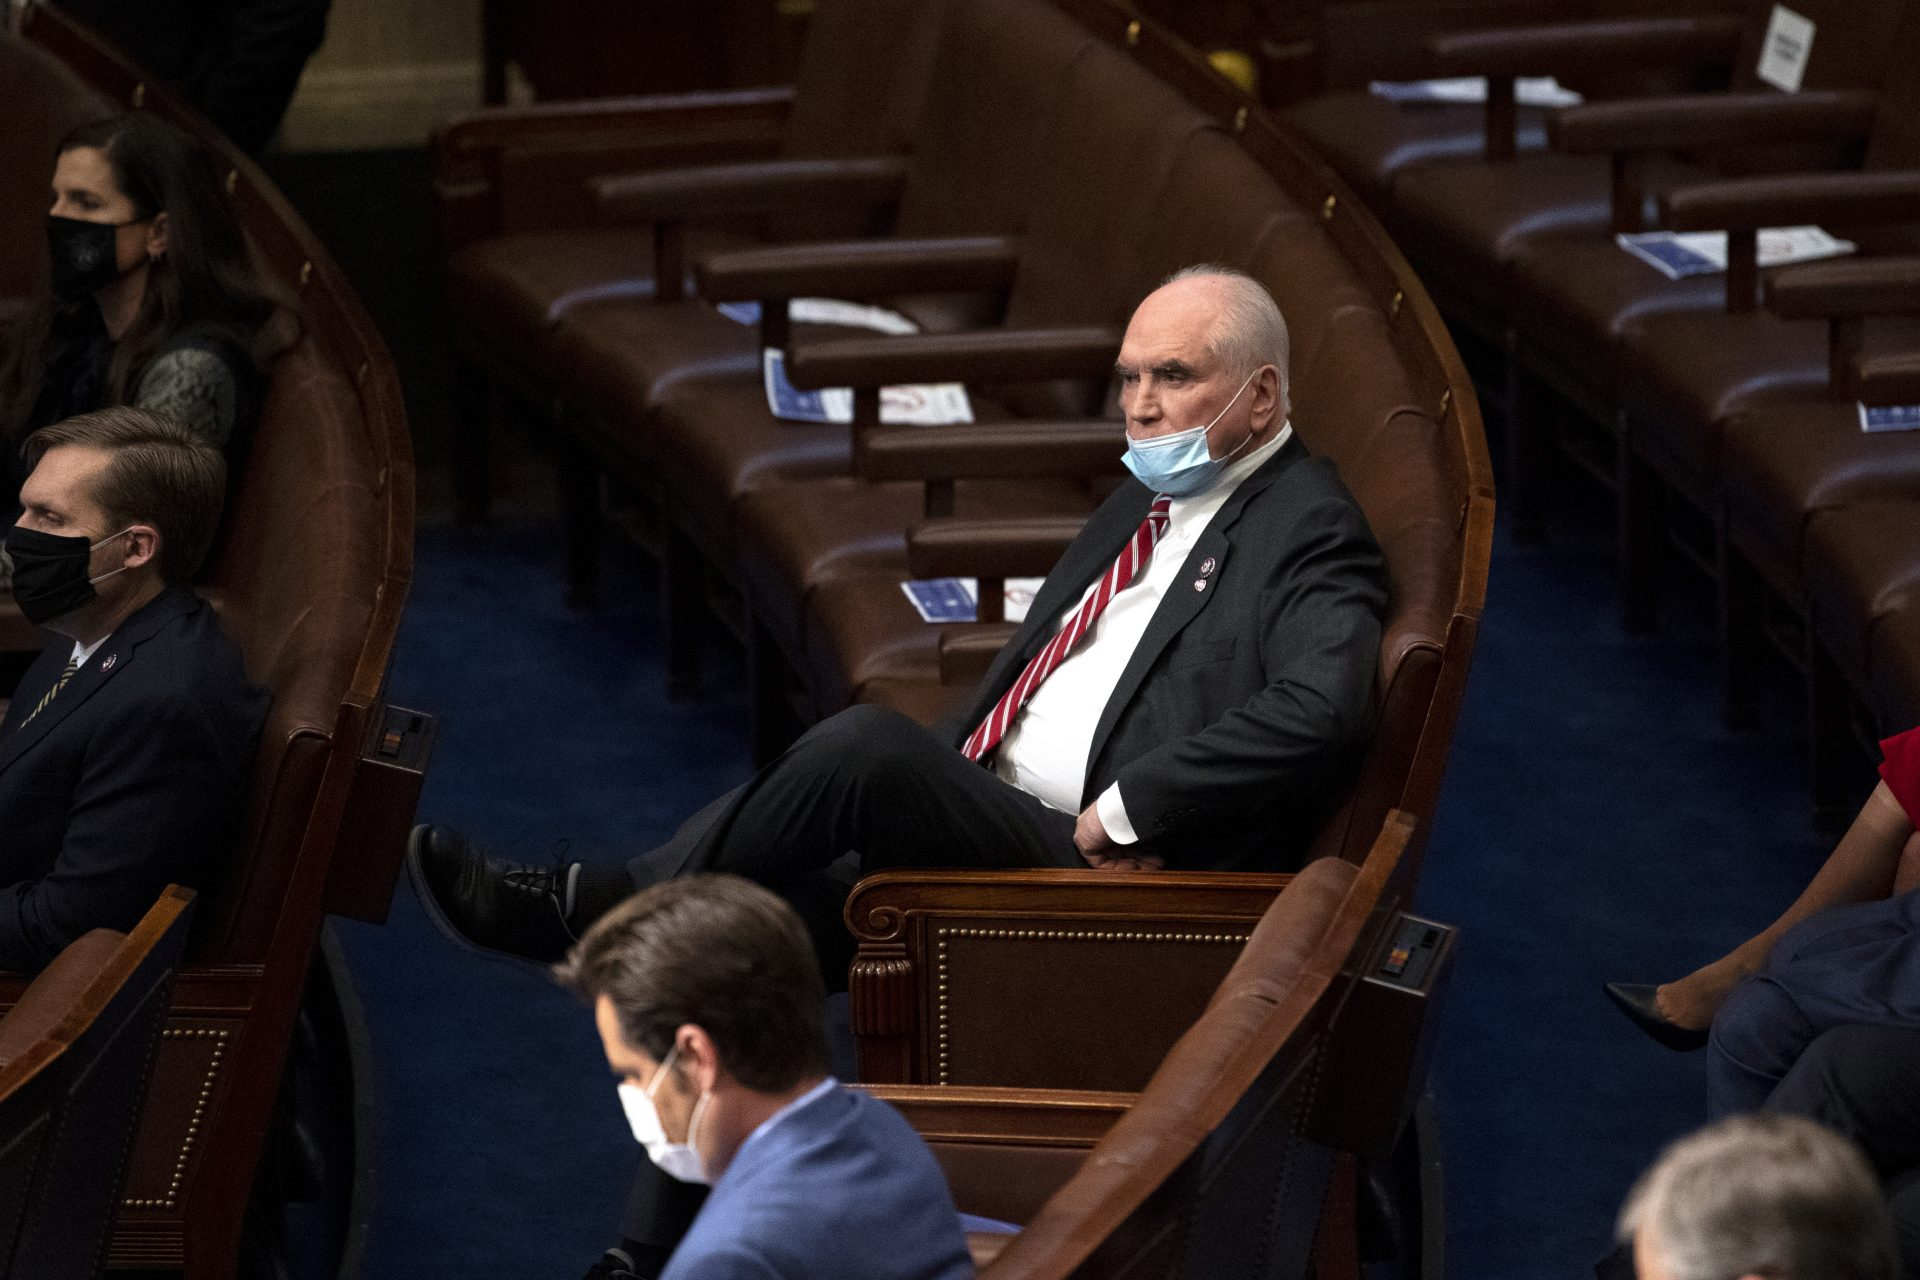 Rep. Mike Kelly, R-Pa., looks on in the House Chamber after they reconvened for arguments over the objection of certifying Arizona's Electoral College votes in November's election, at the Capitol in Washington, Wednesday, Jan. 6, 2021.